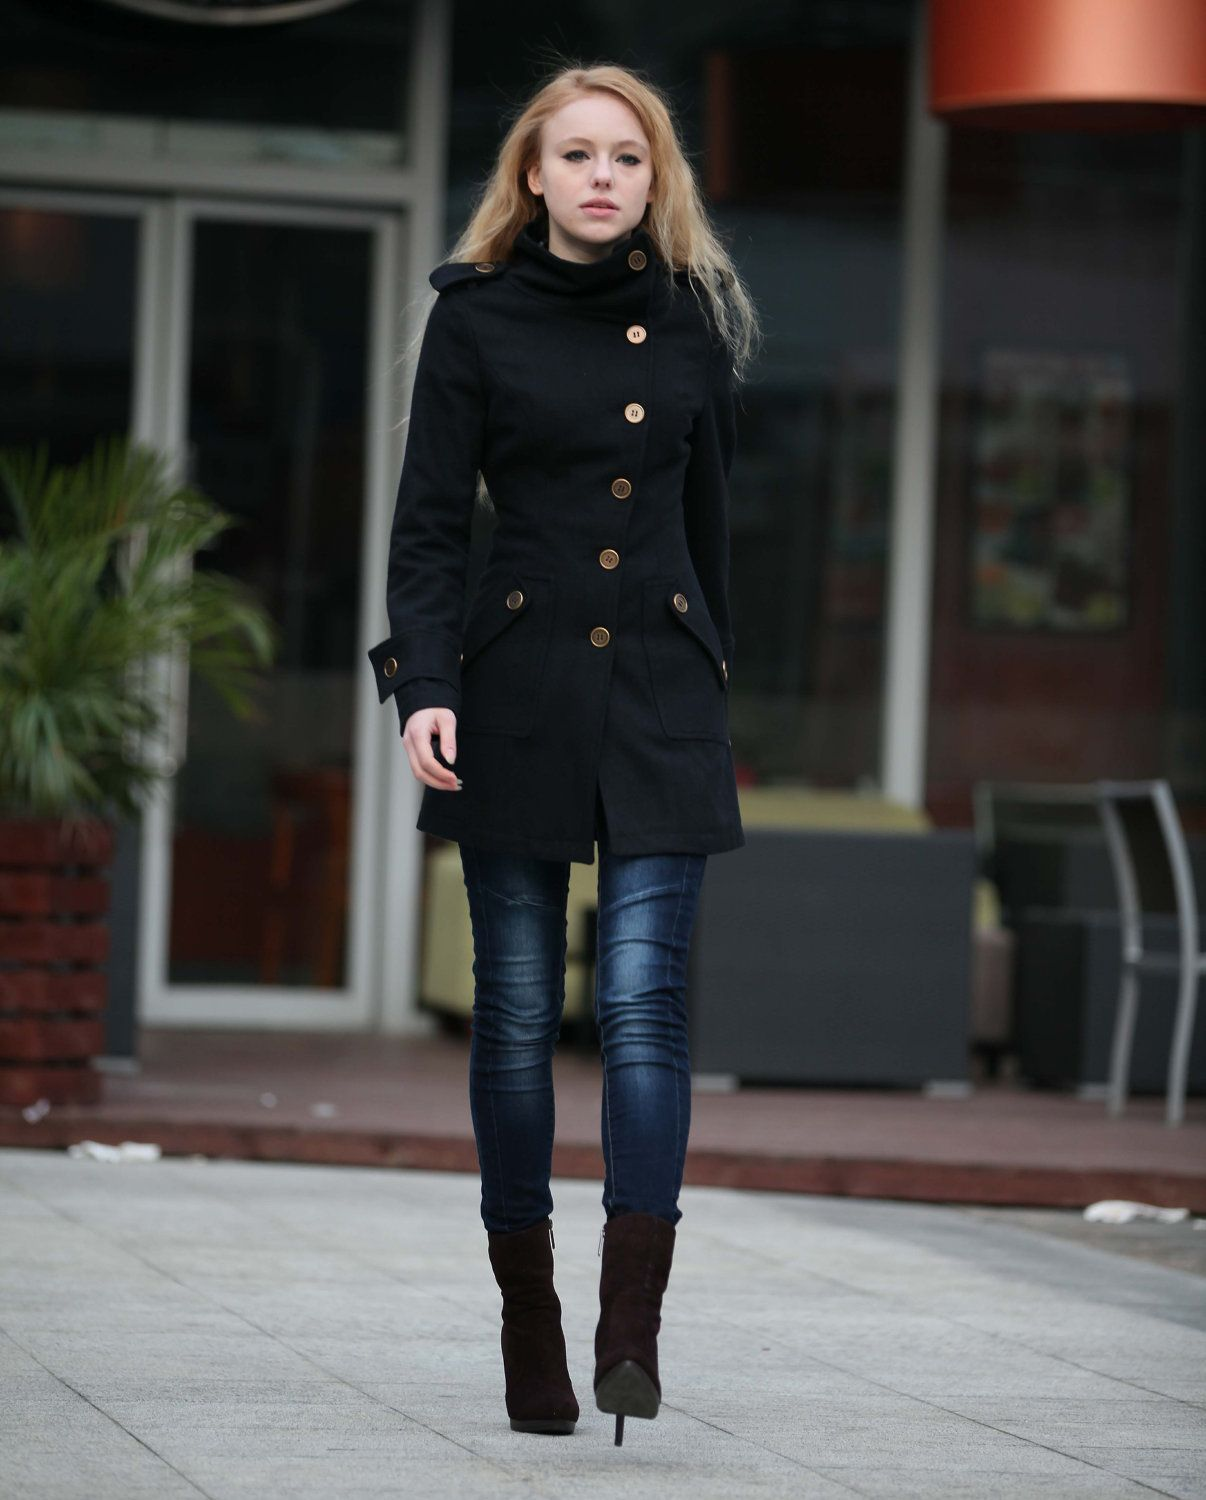 Black Coat Fitted Military Jacket Winter Wool Jacket Casual ...